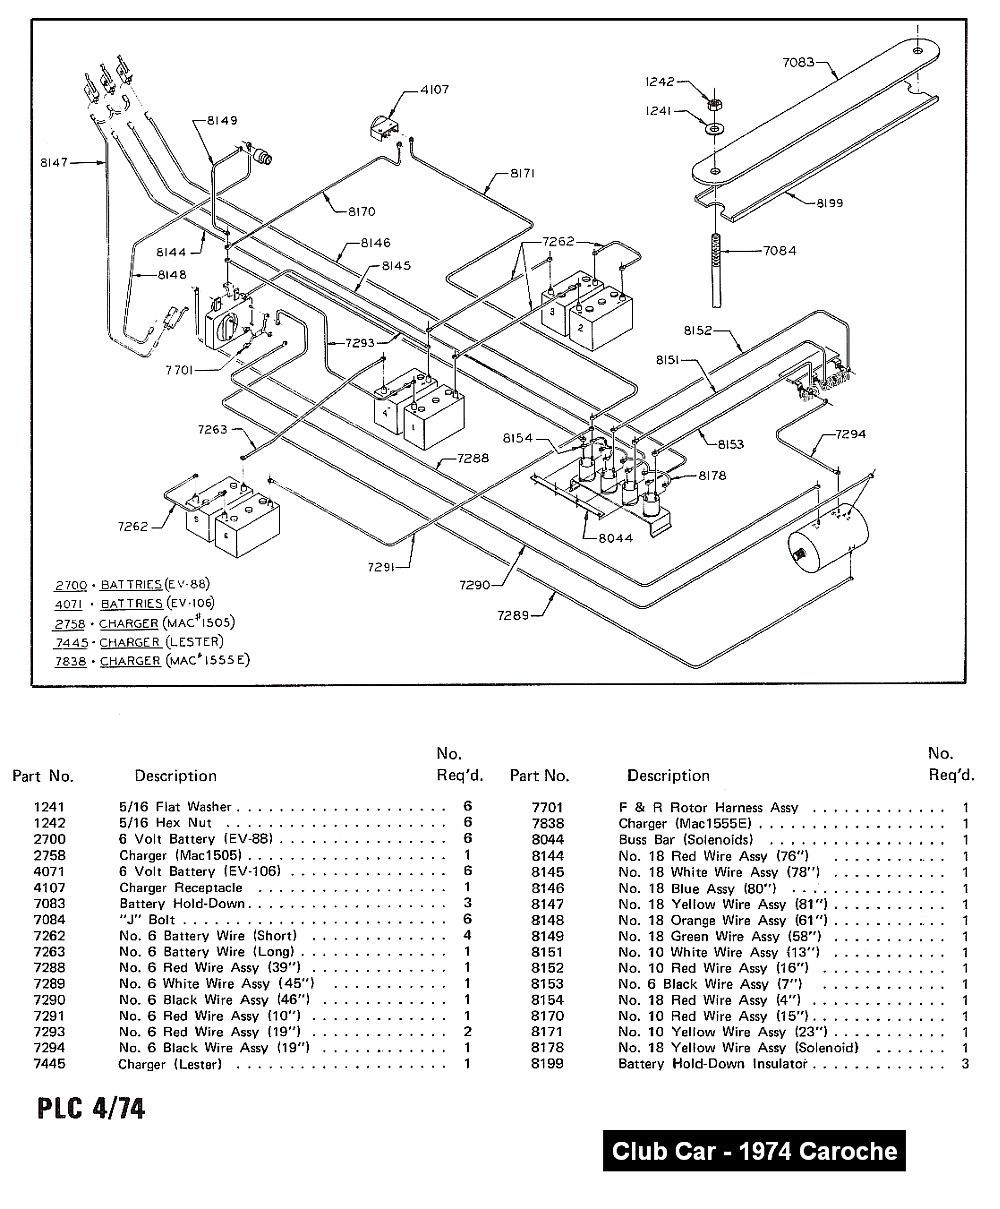 club car golf cart parts diagram